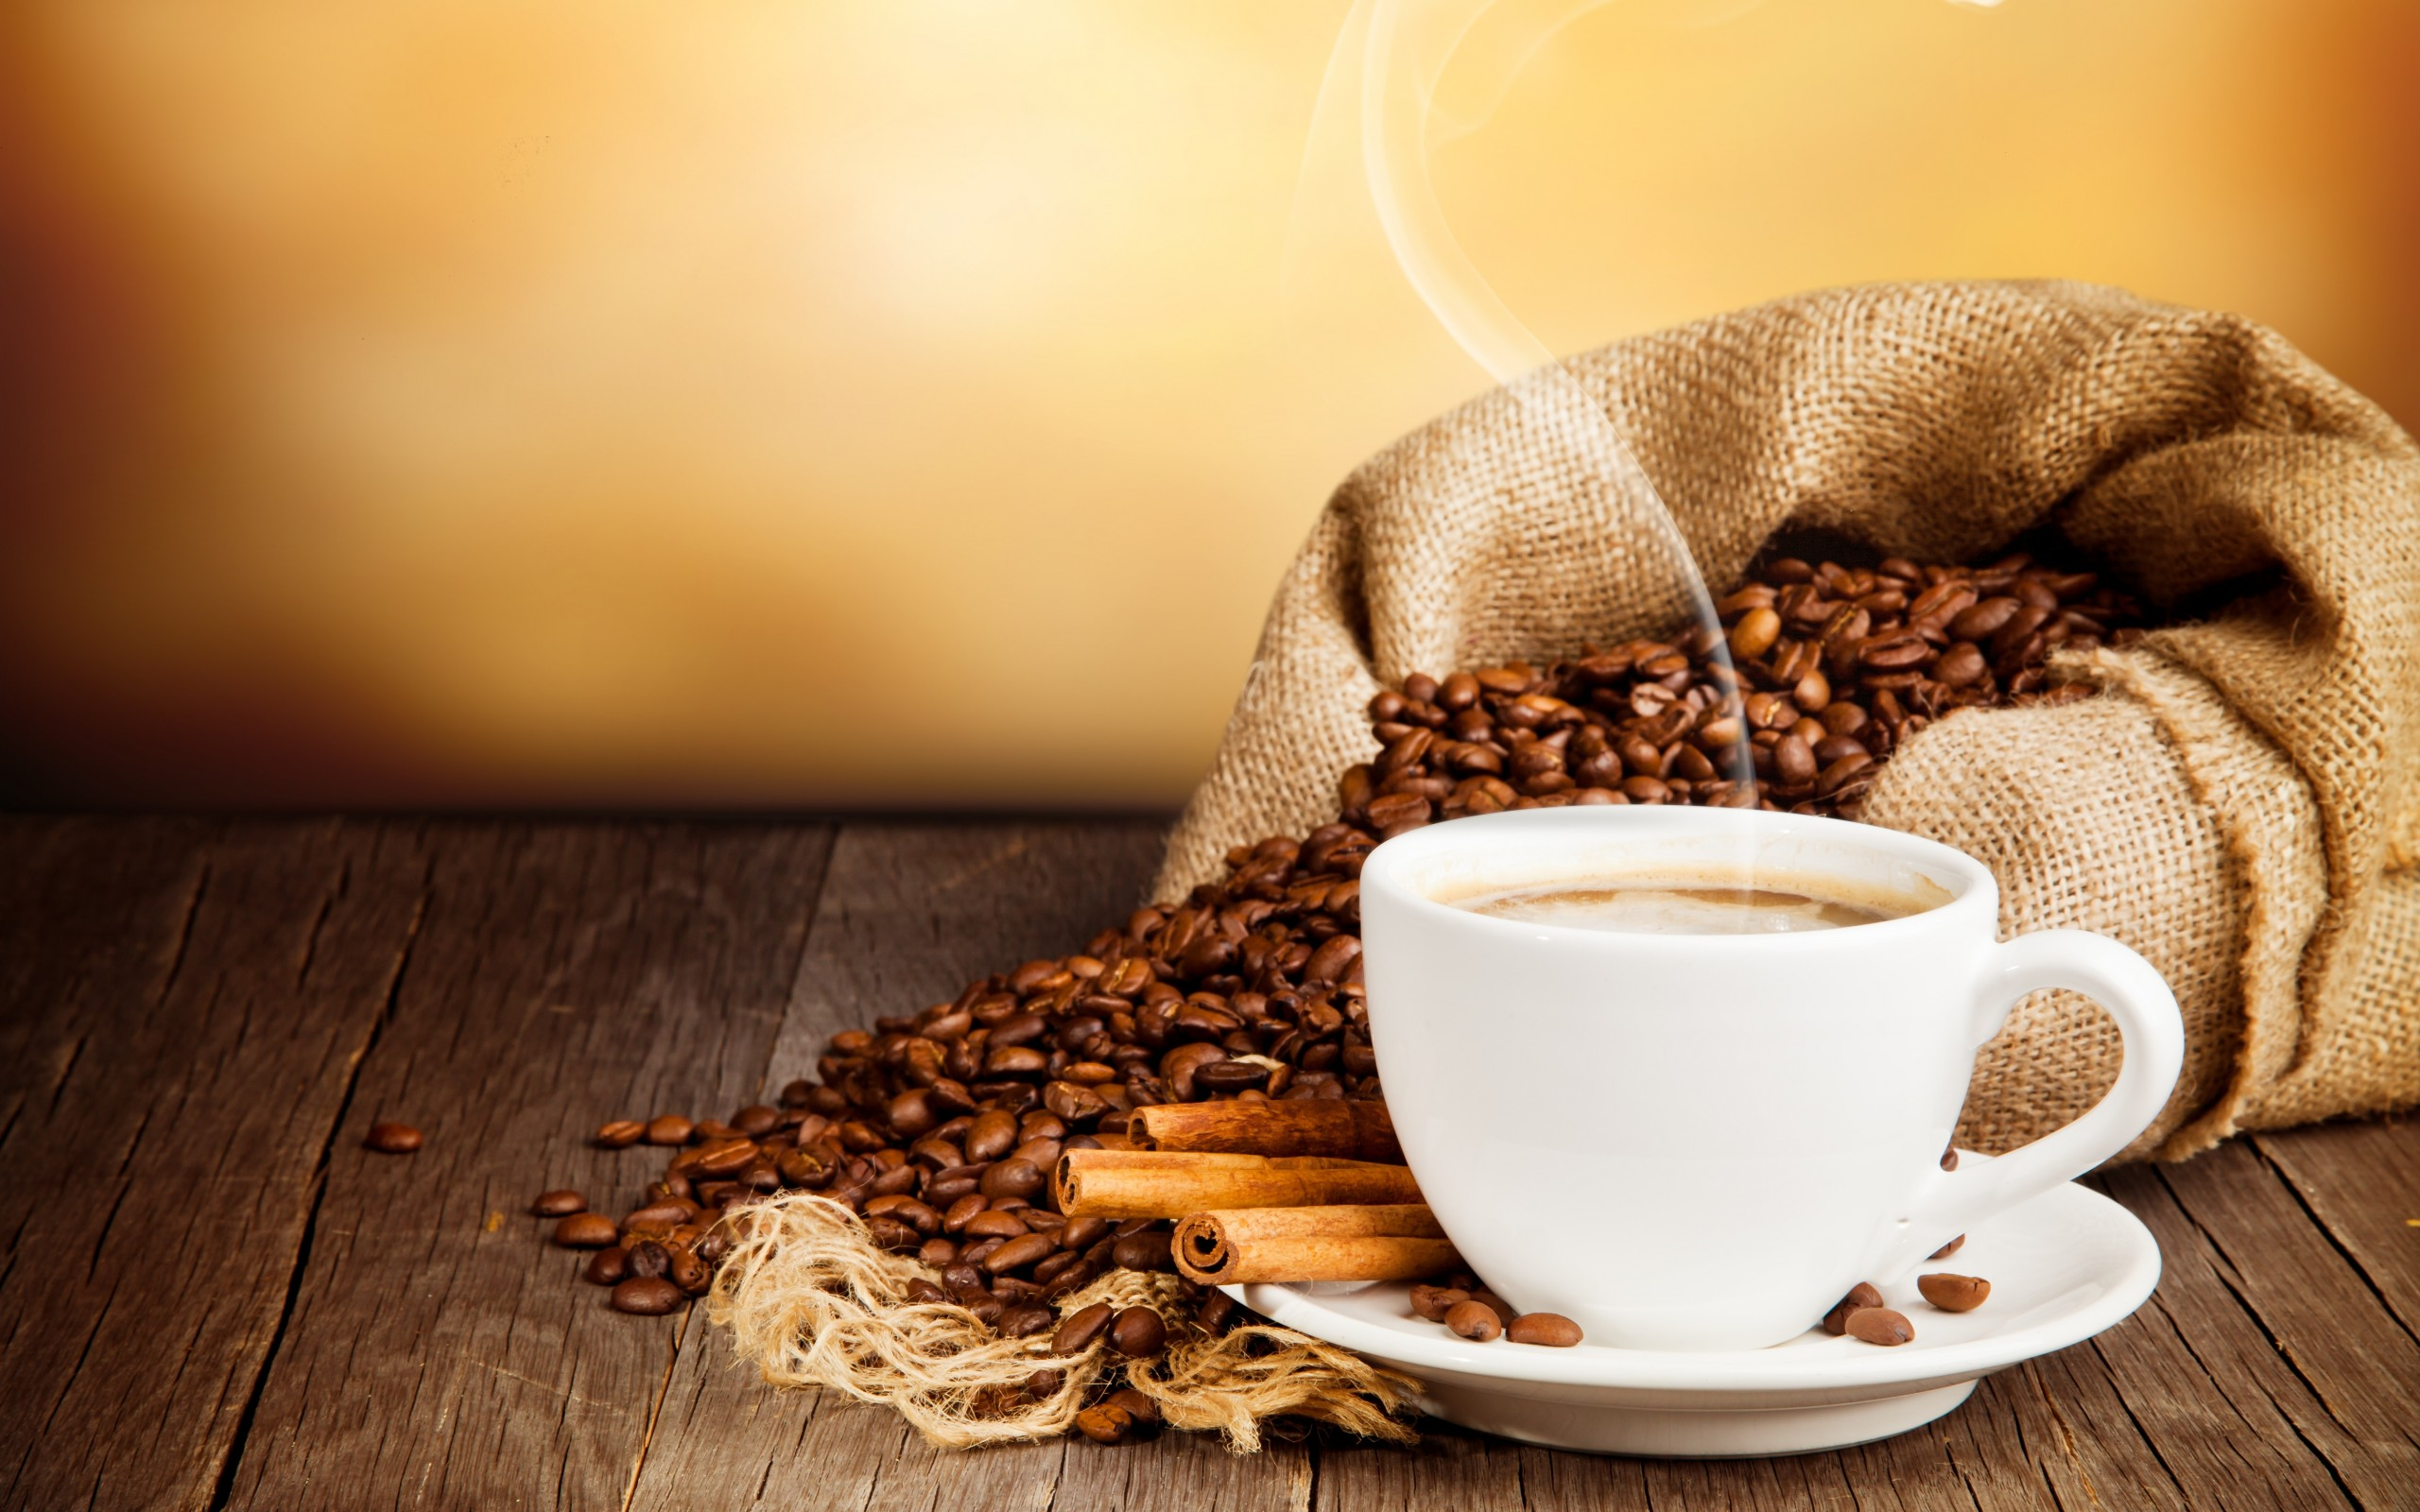 Coffee Hd Wallpaper Background Image 2560x1600 Id 361708 Abyss